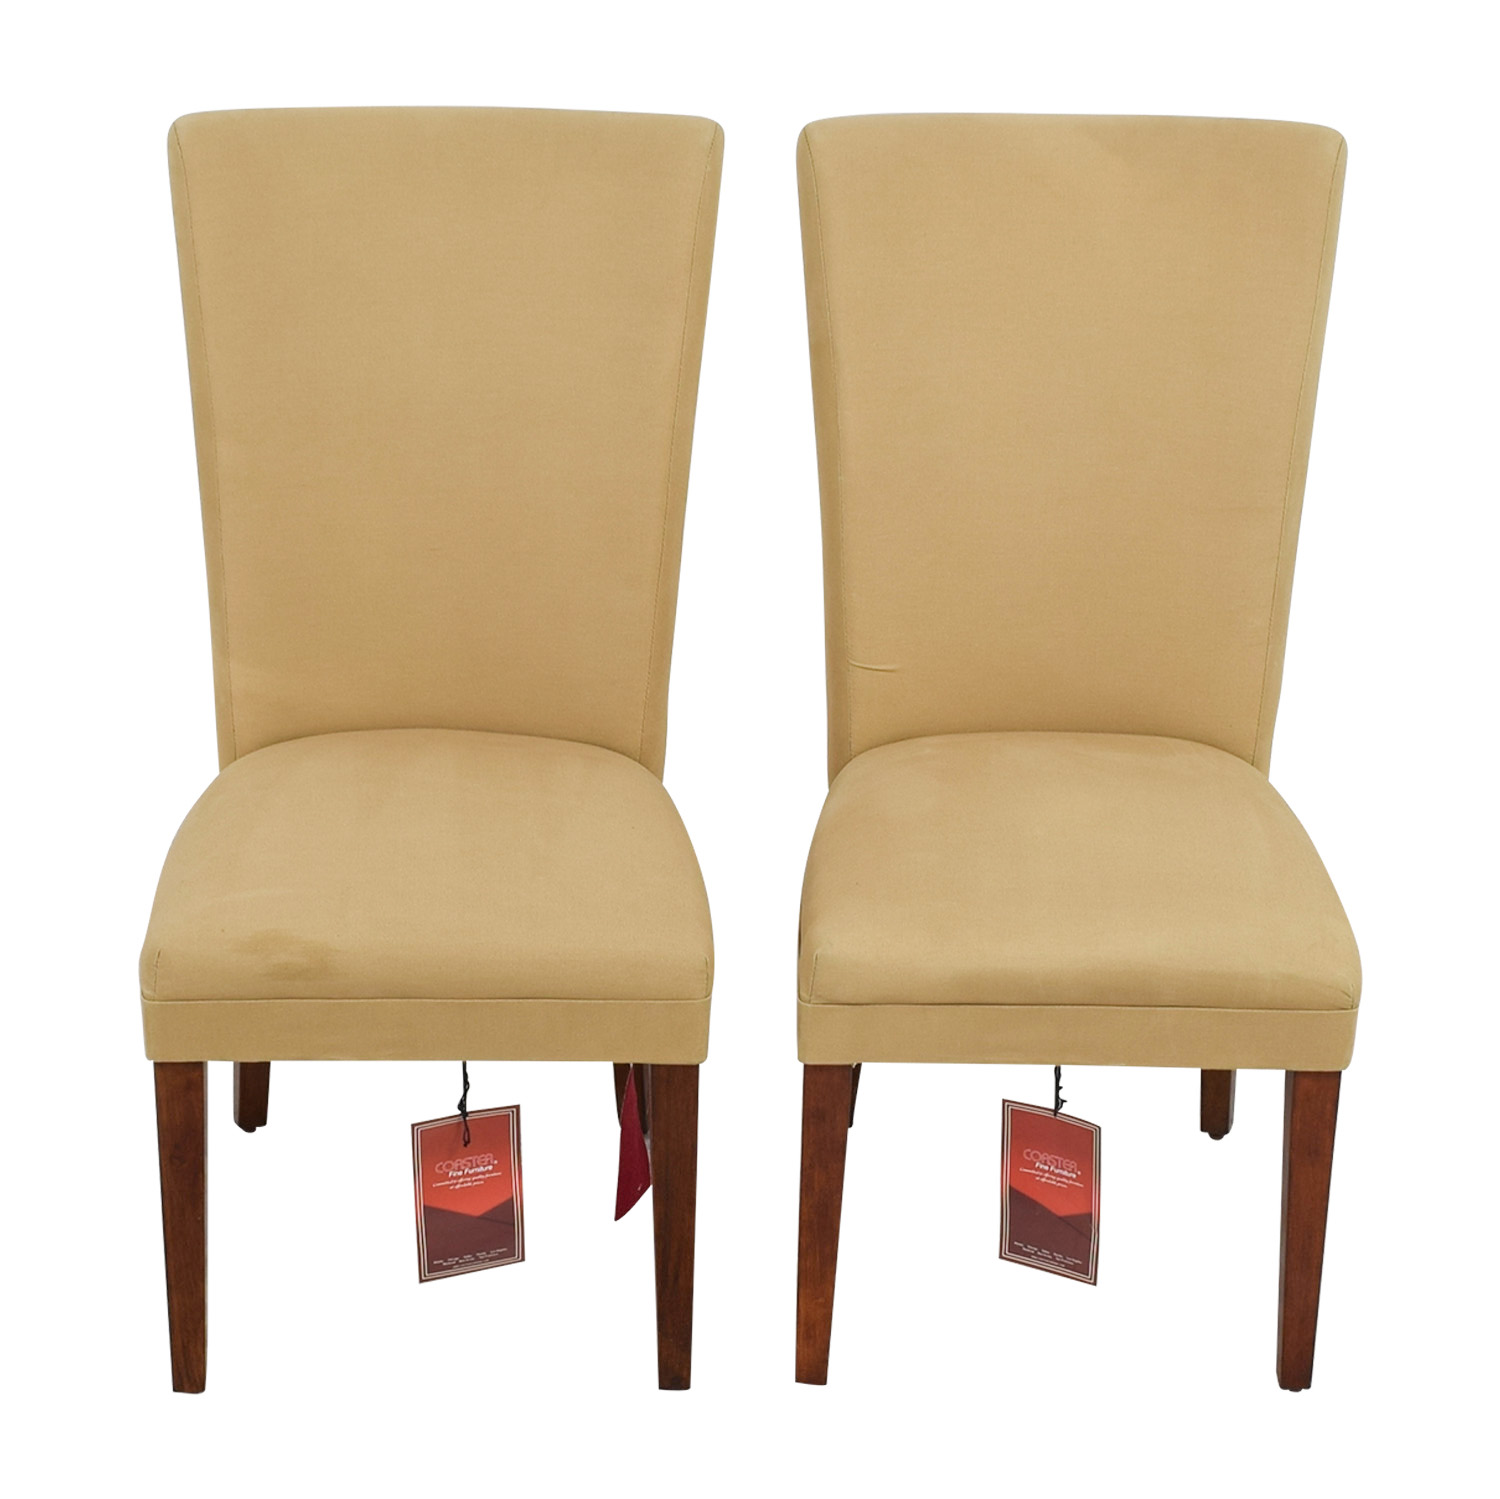 Coaster Coaster High Back Tan Chairs for sale